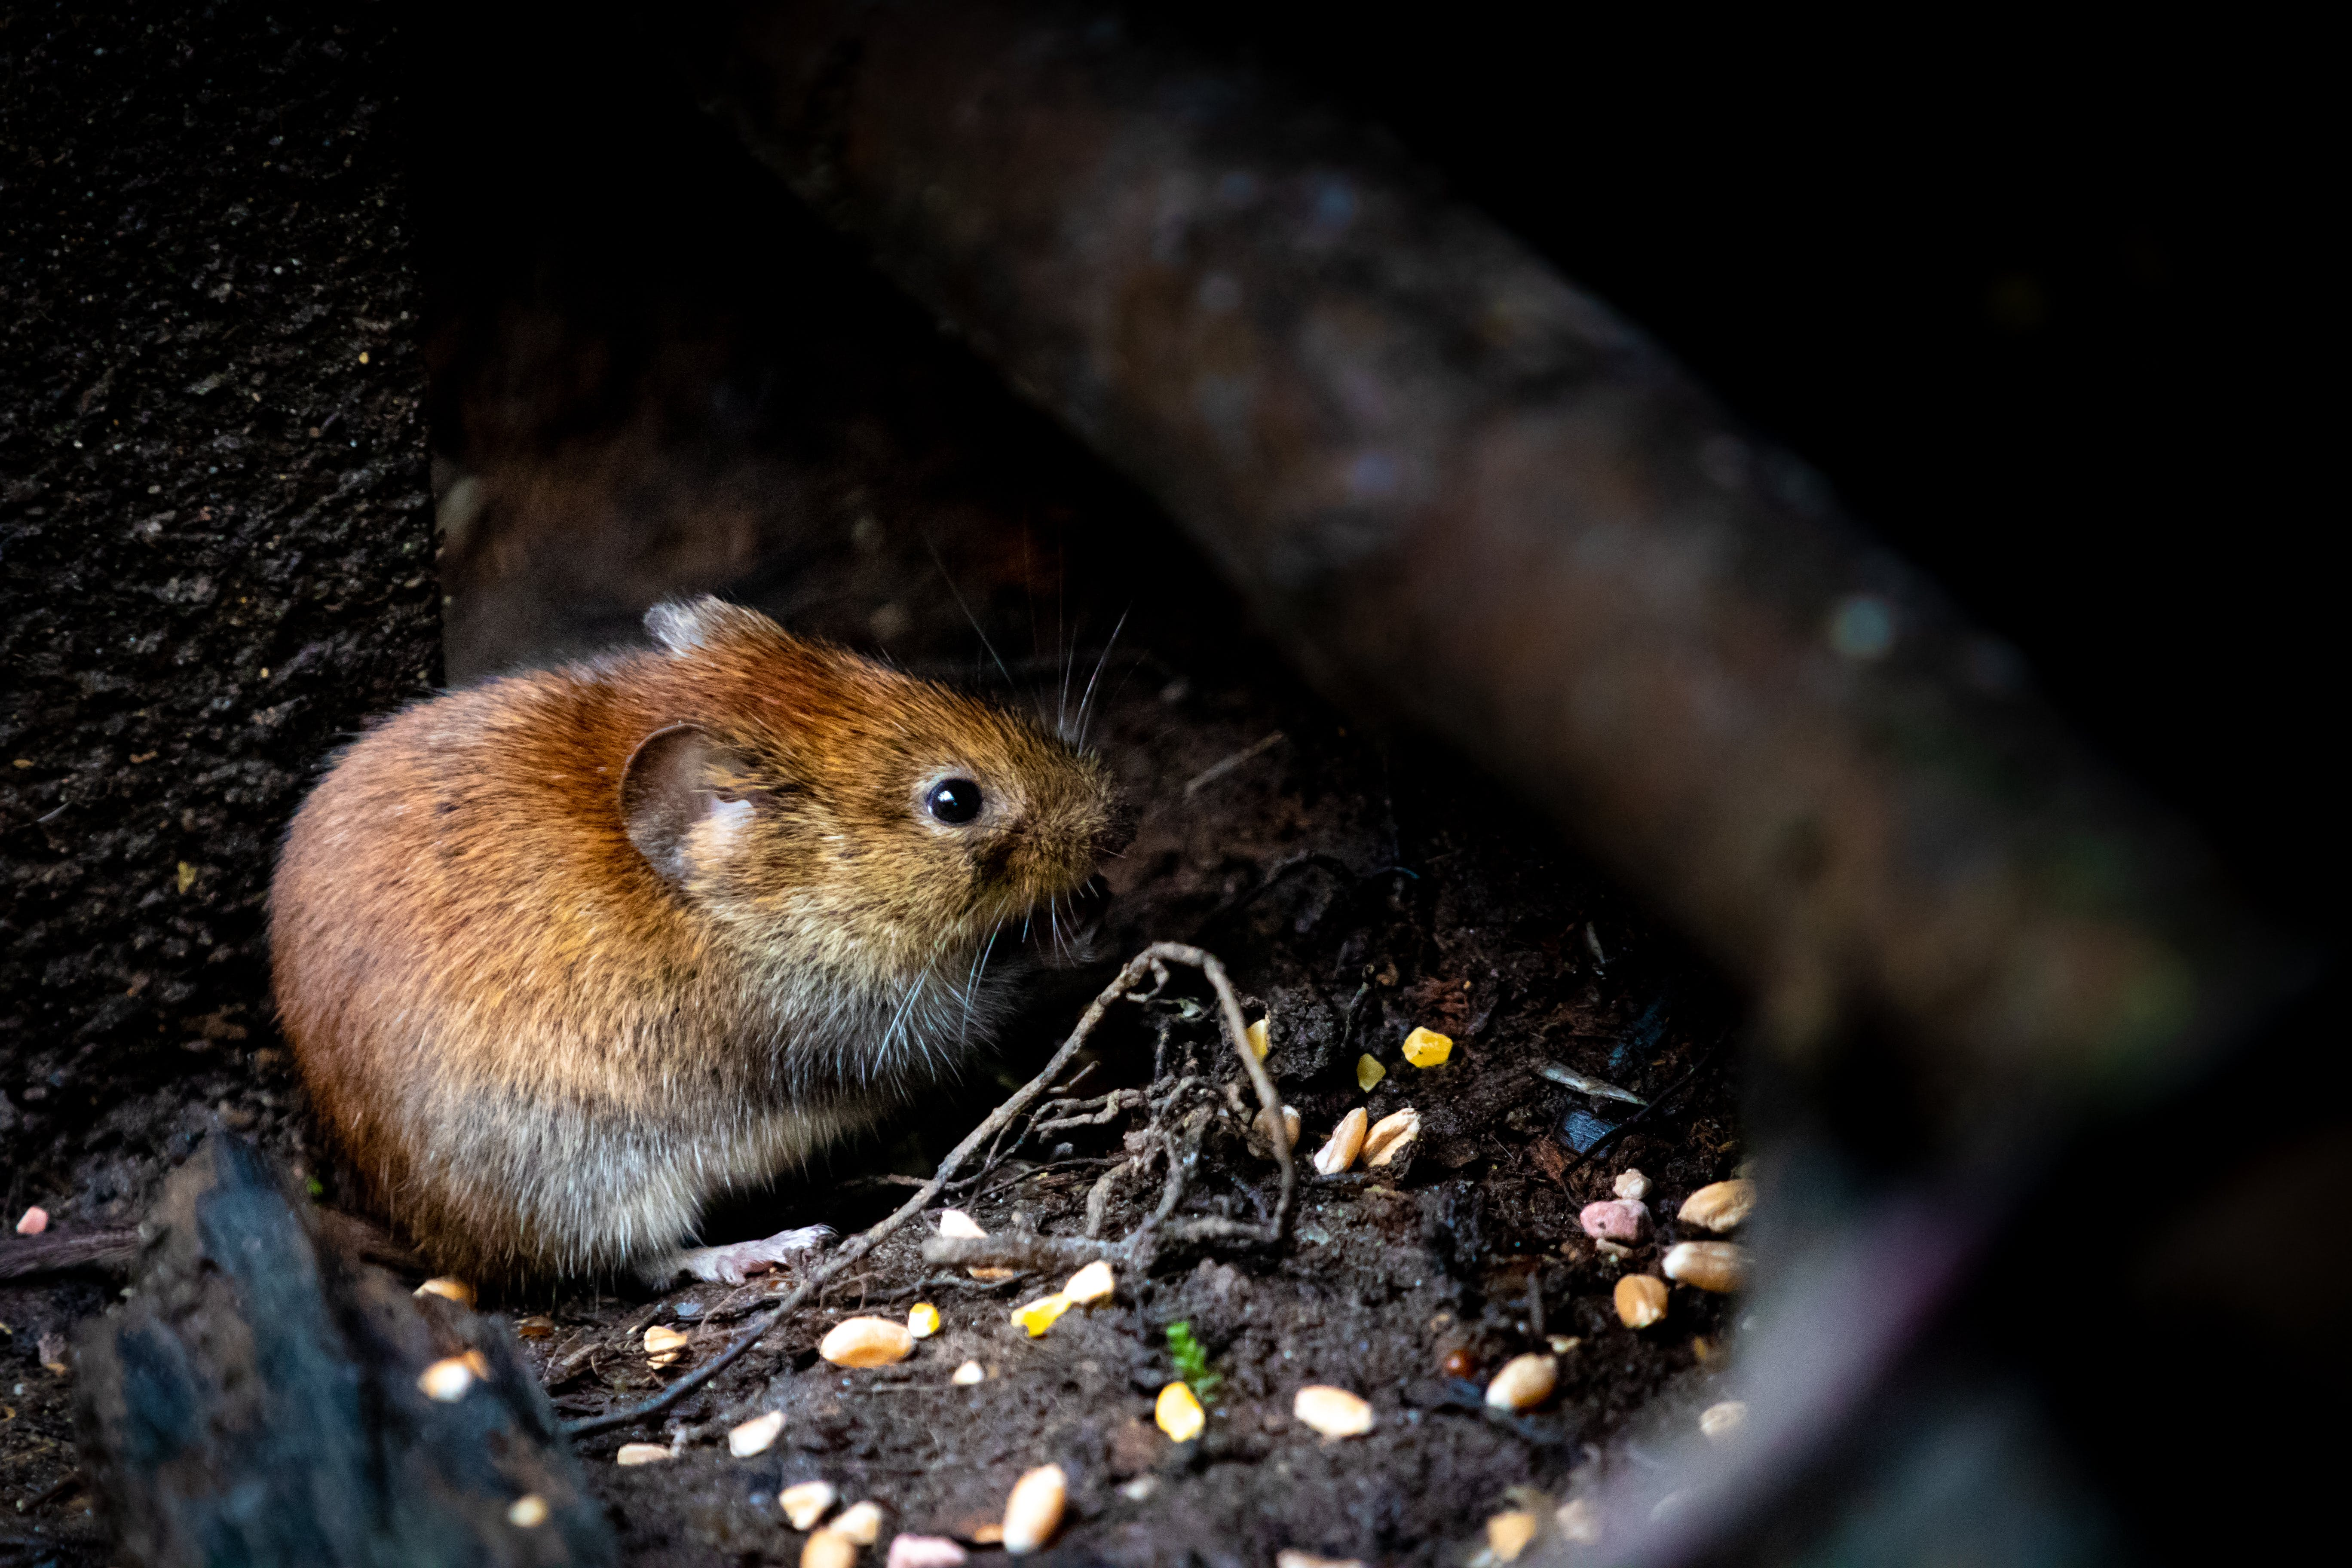 Selective Focus Photography of Brown Rodent